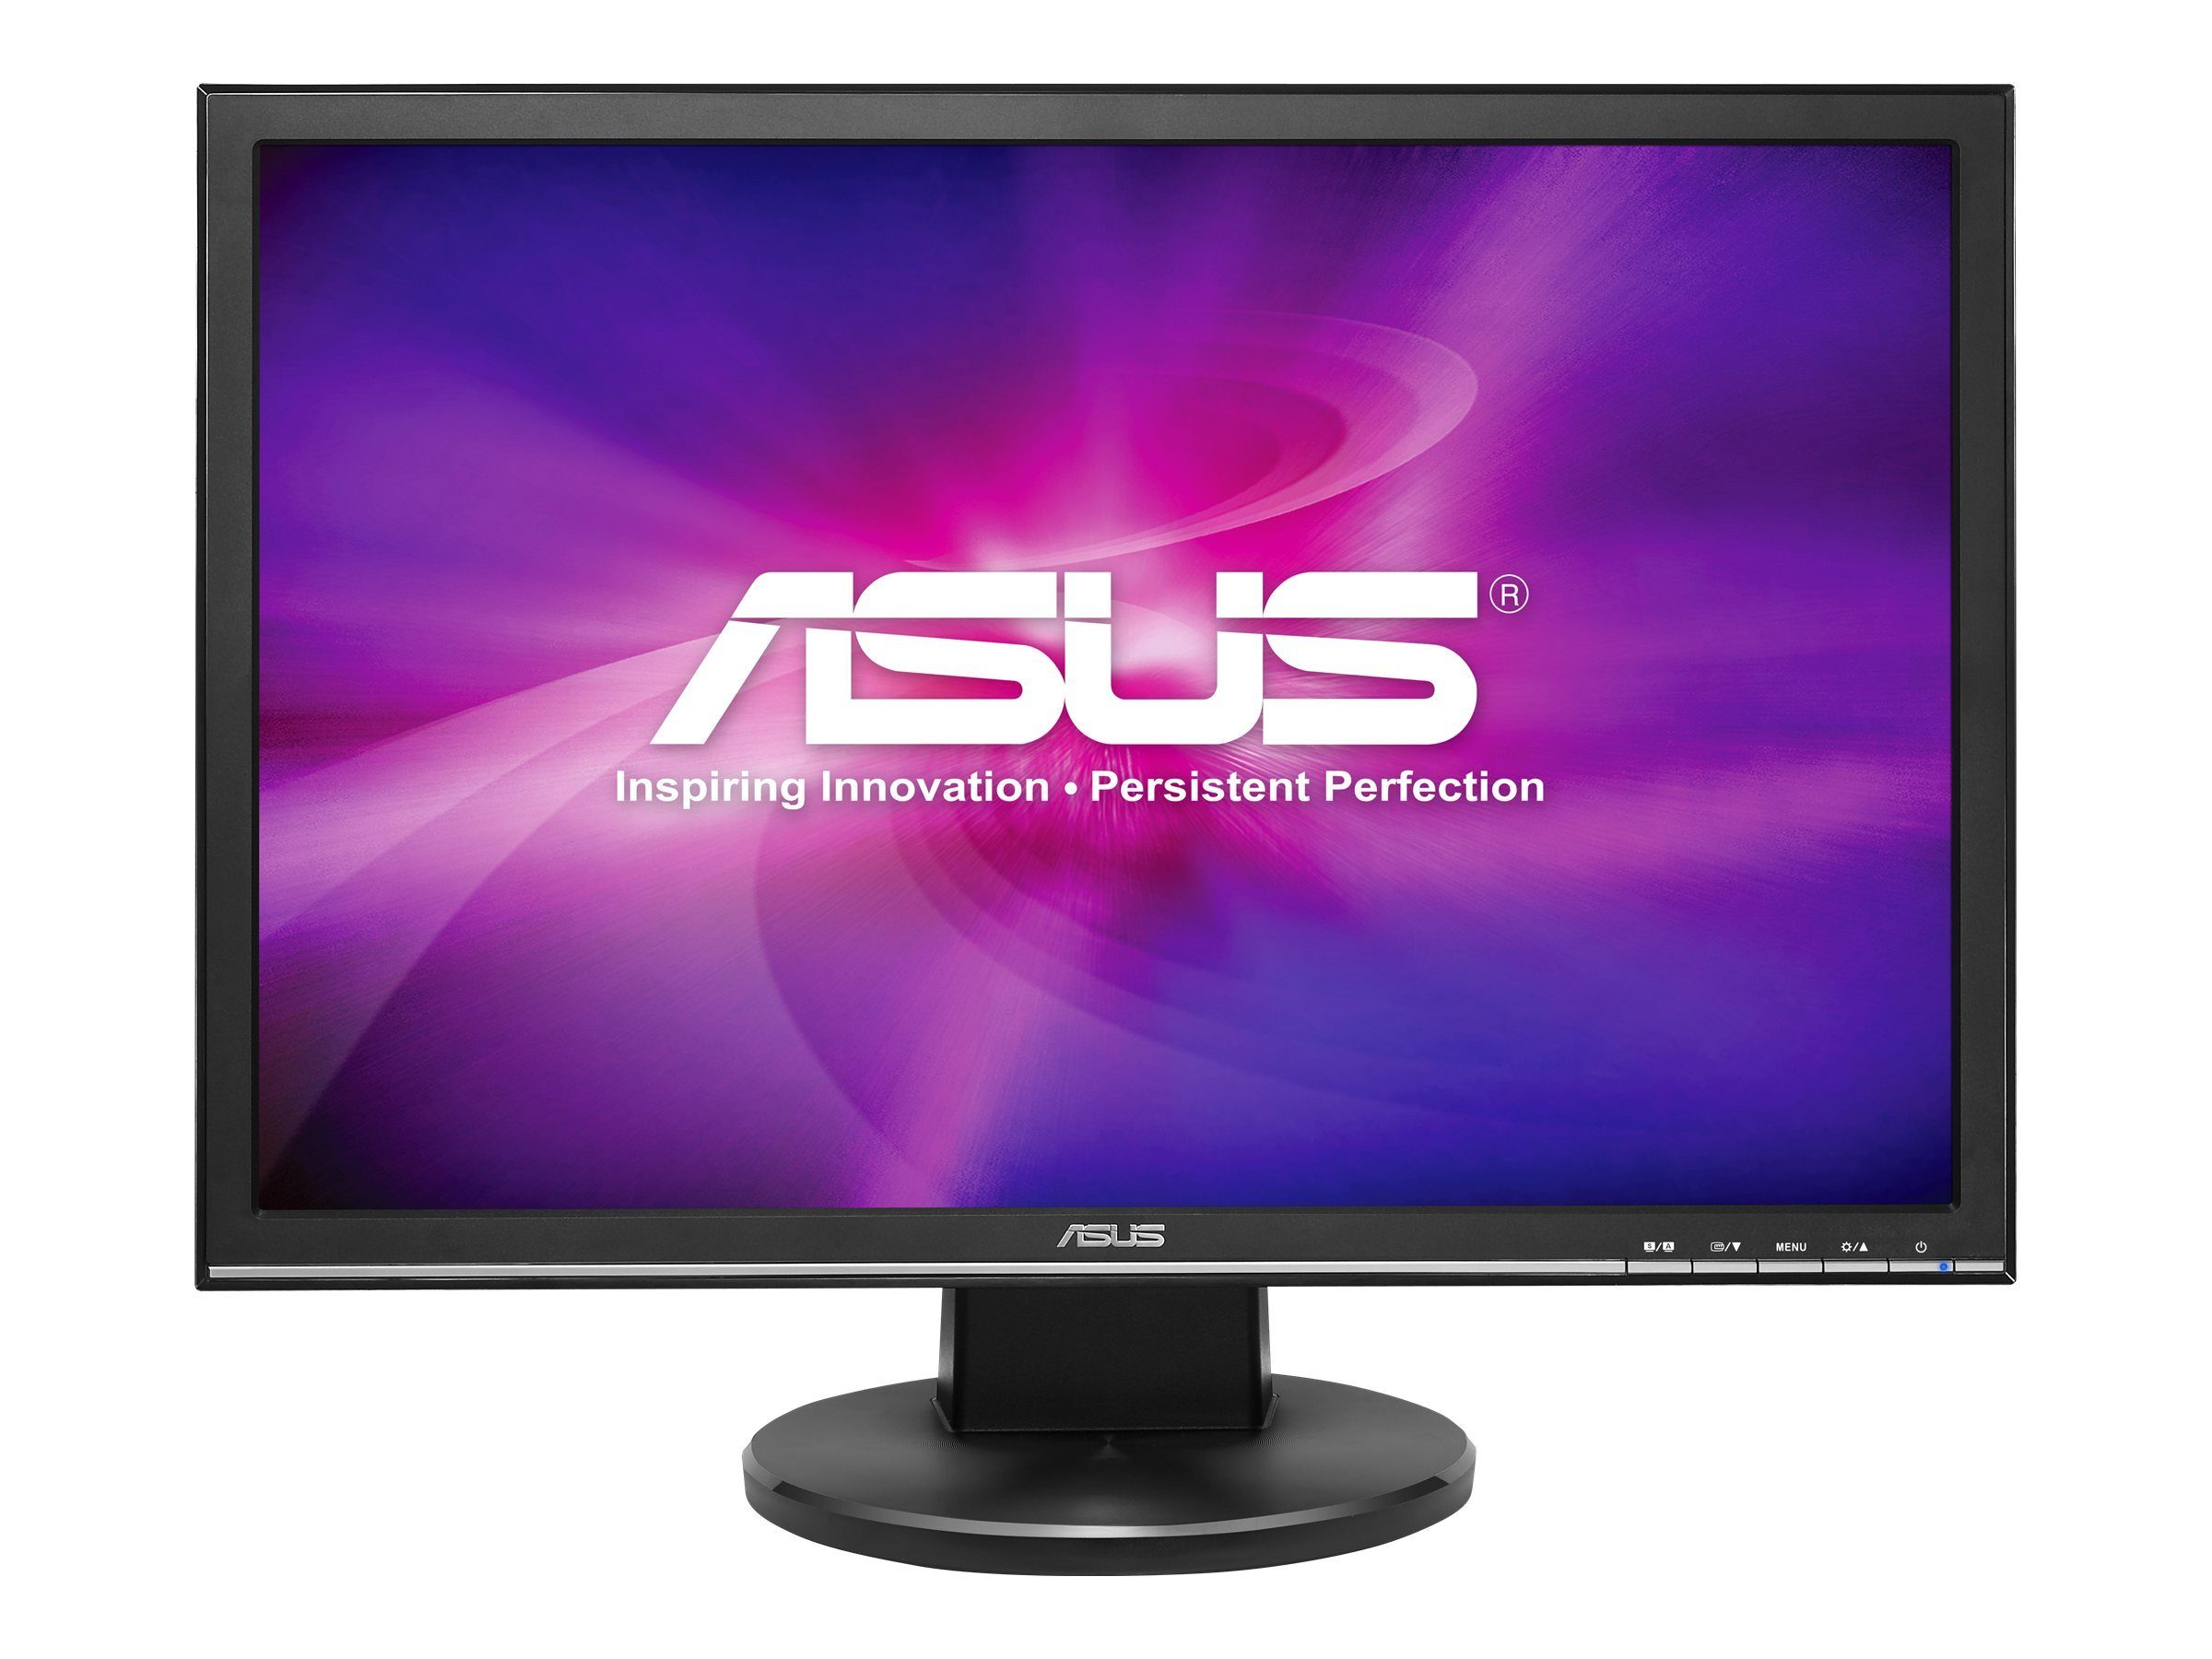 ASUS VW22AT - LED-Monitor - 55.9 cm (22